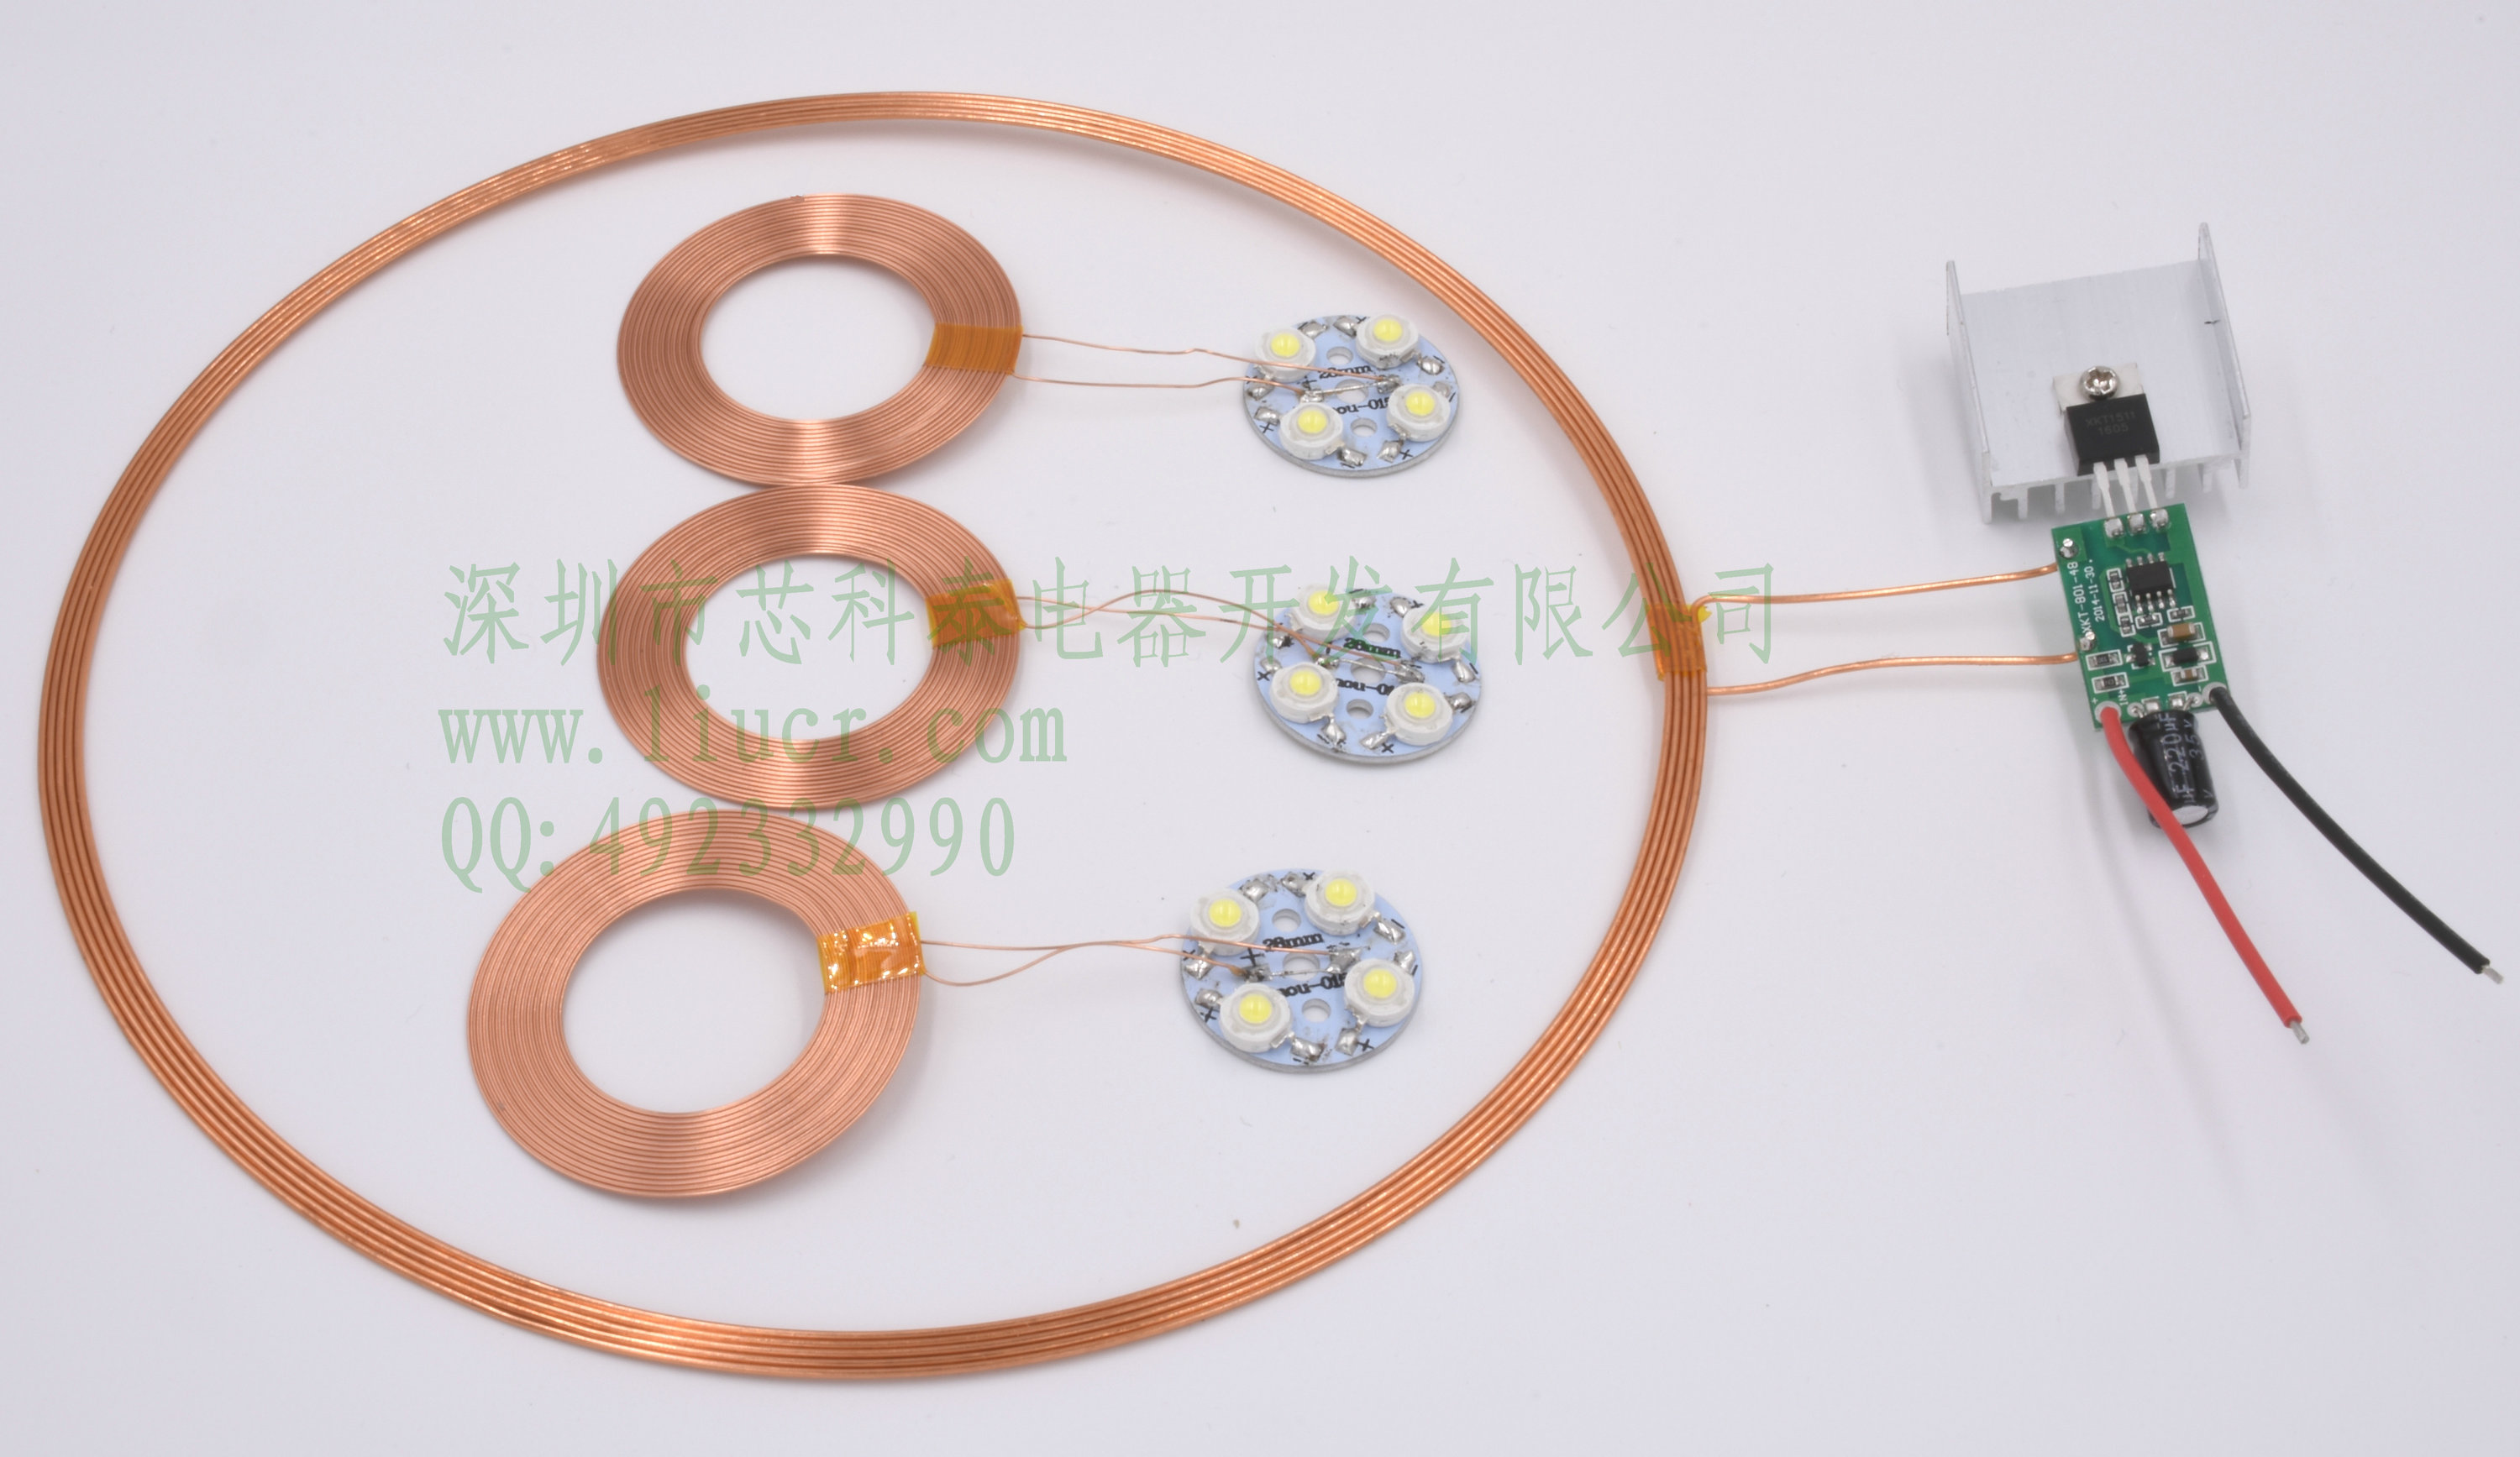 300mm Wireless Power Supply Module, Wireless Charging Module, Wireless Transmission Module, XKT801-01 xkt 412 wireless charging module wireless power supply module high current wireless transmission module